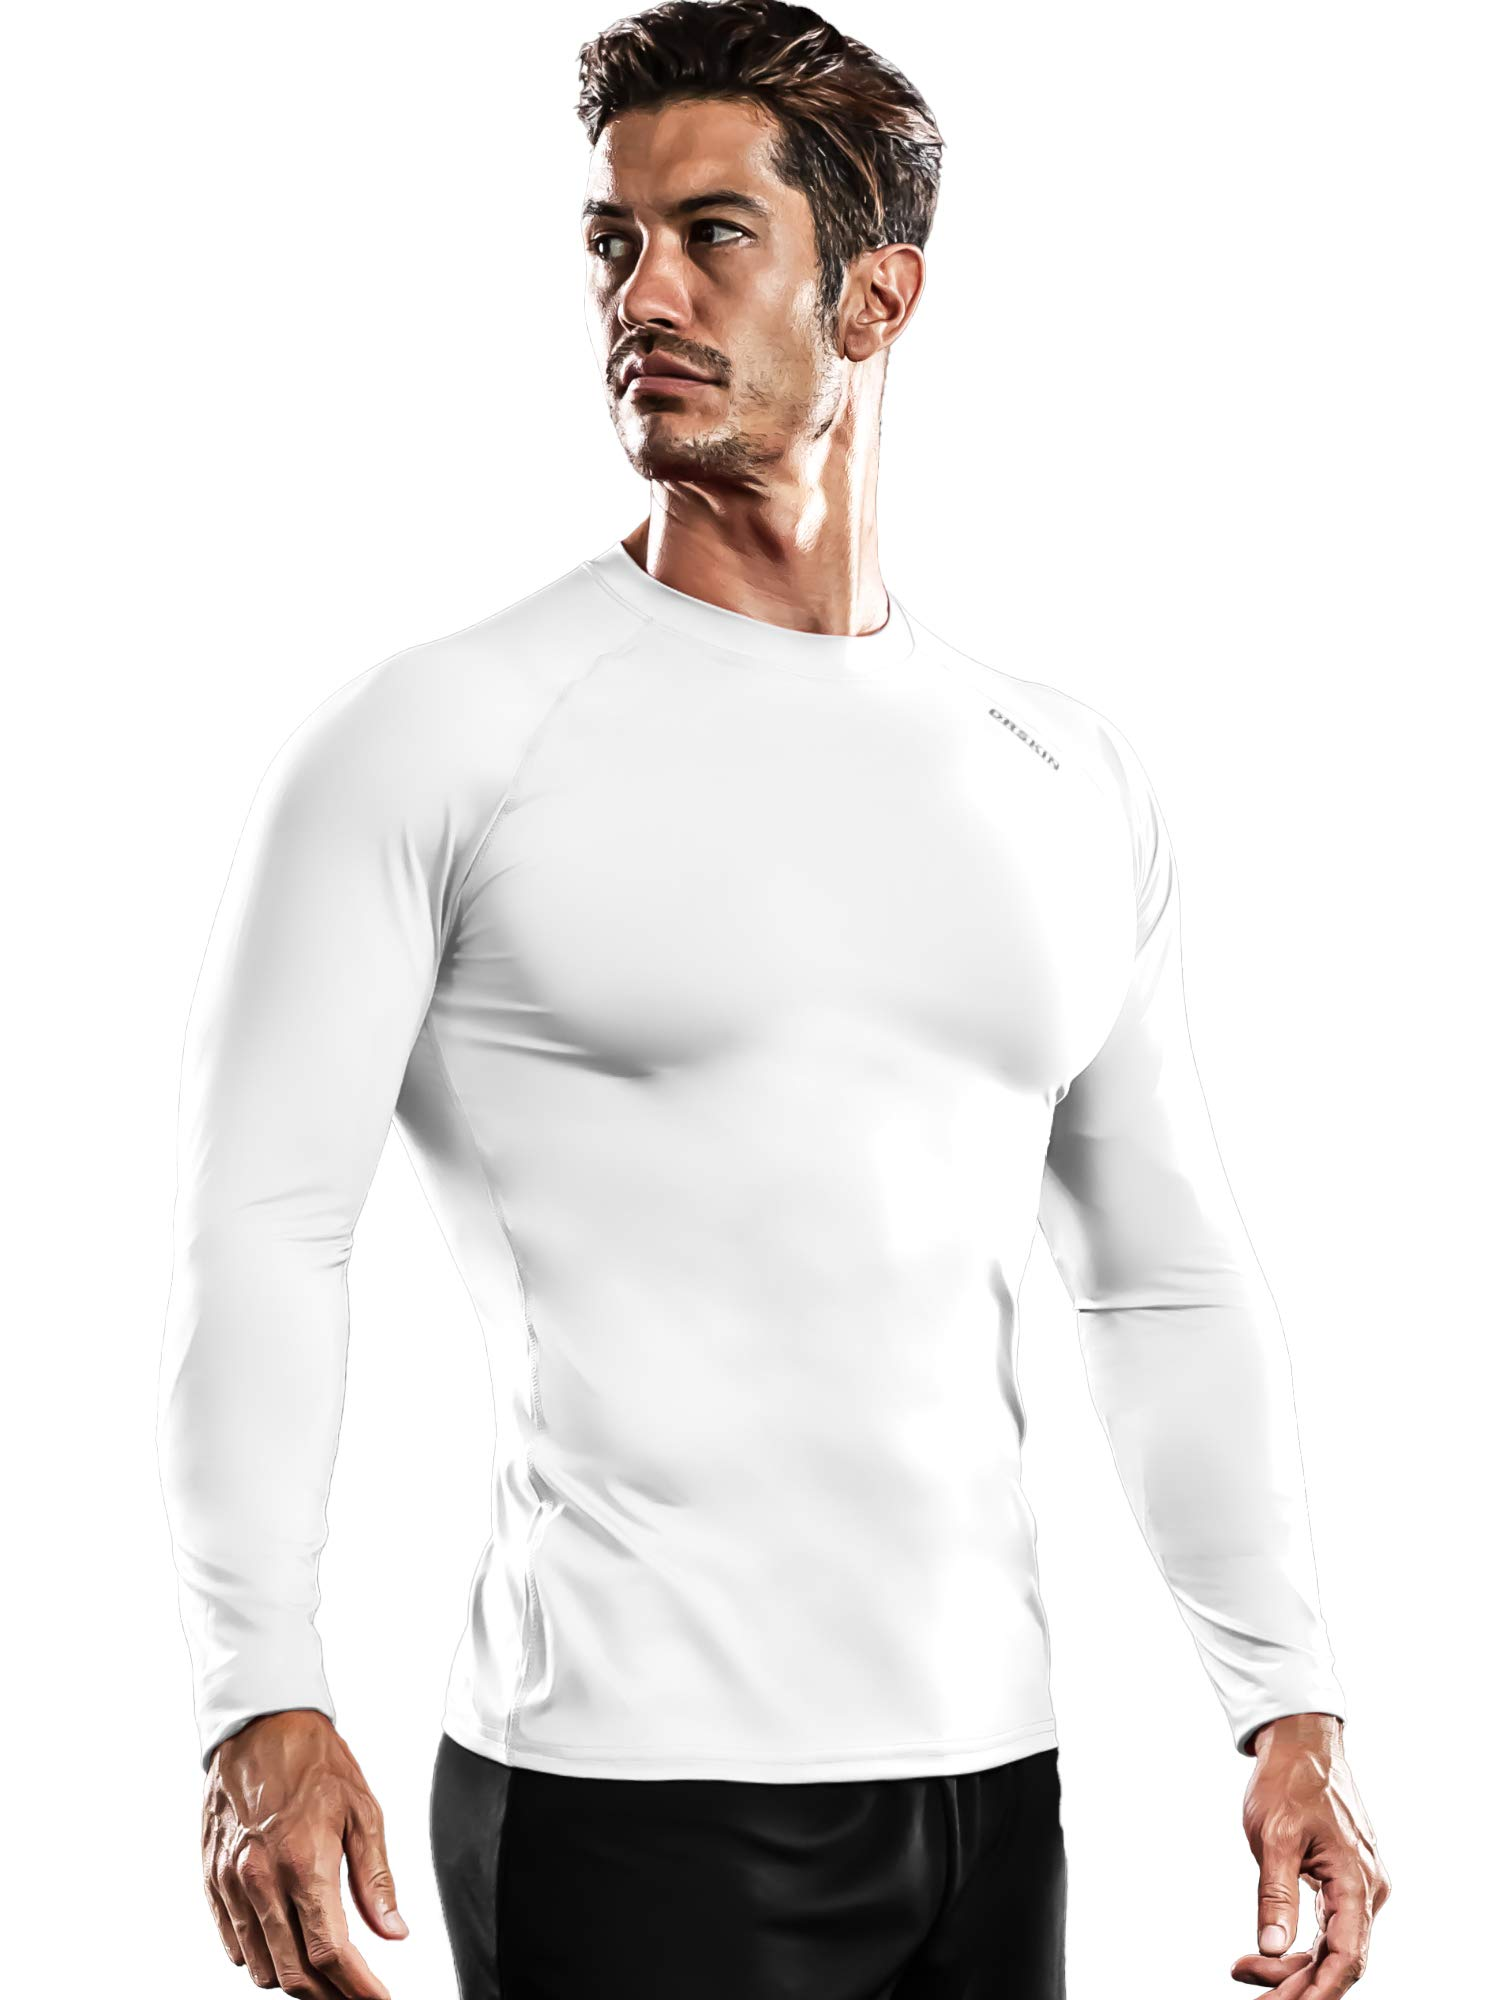 DRSKIN Compression Cool Dry Sports Top Shirt